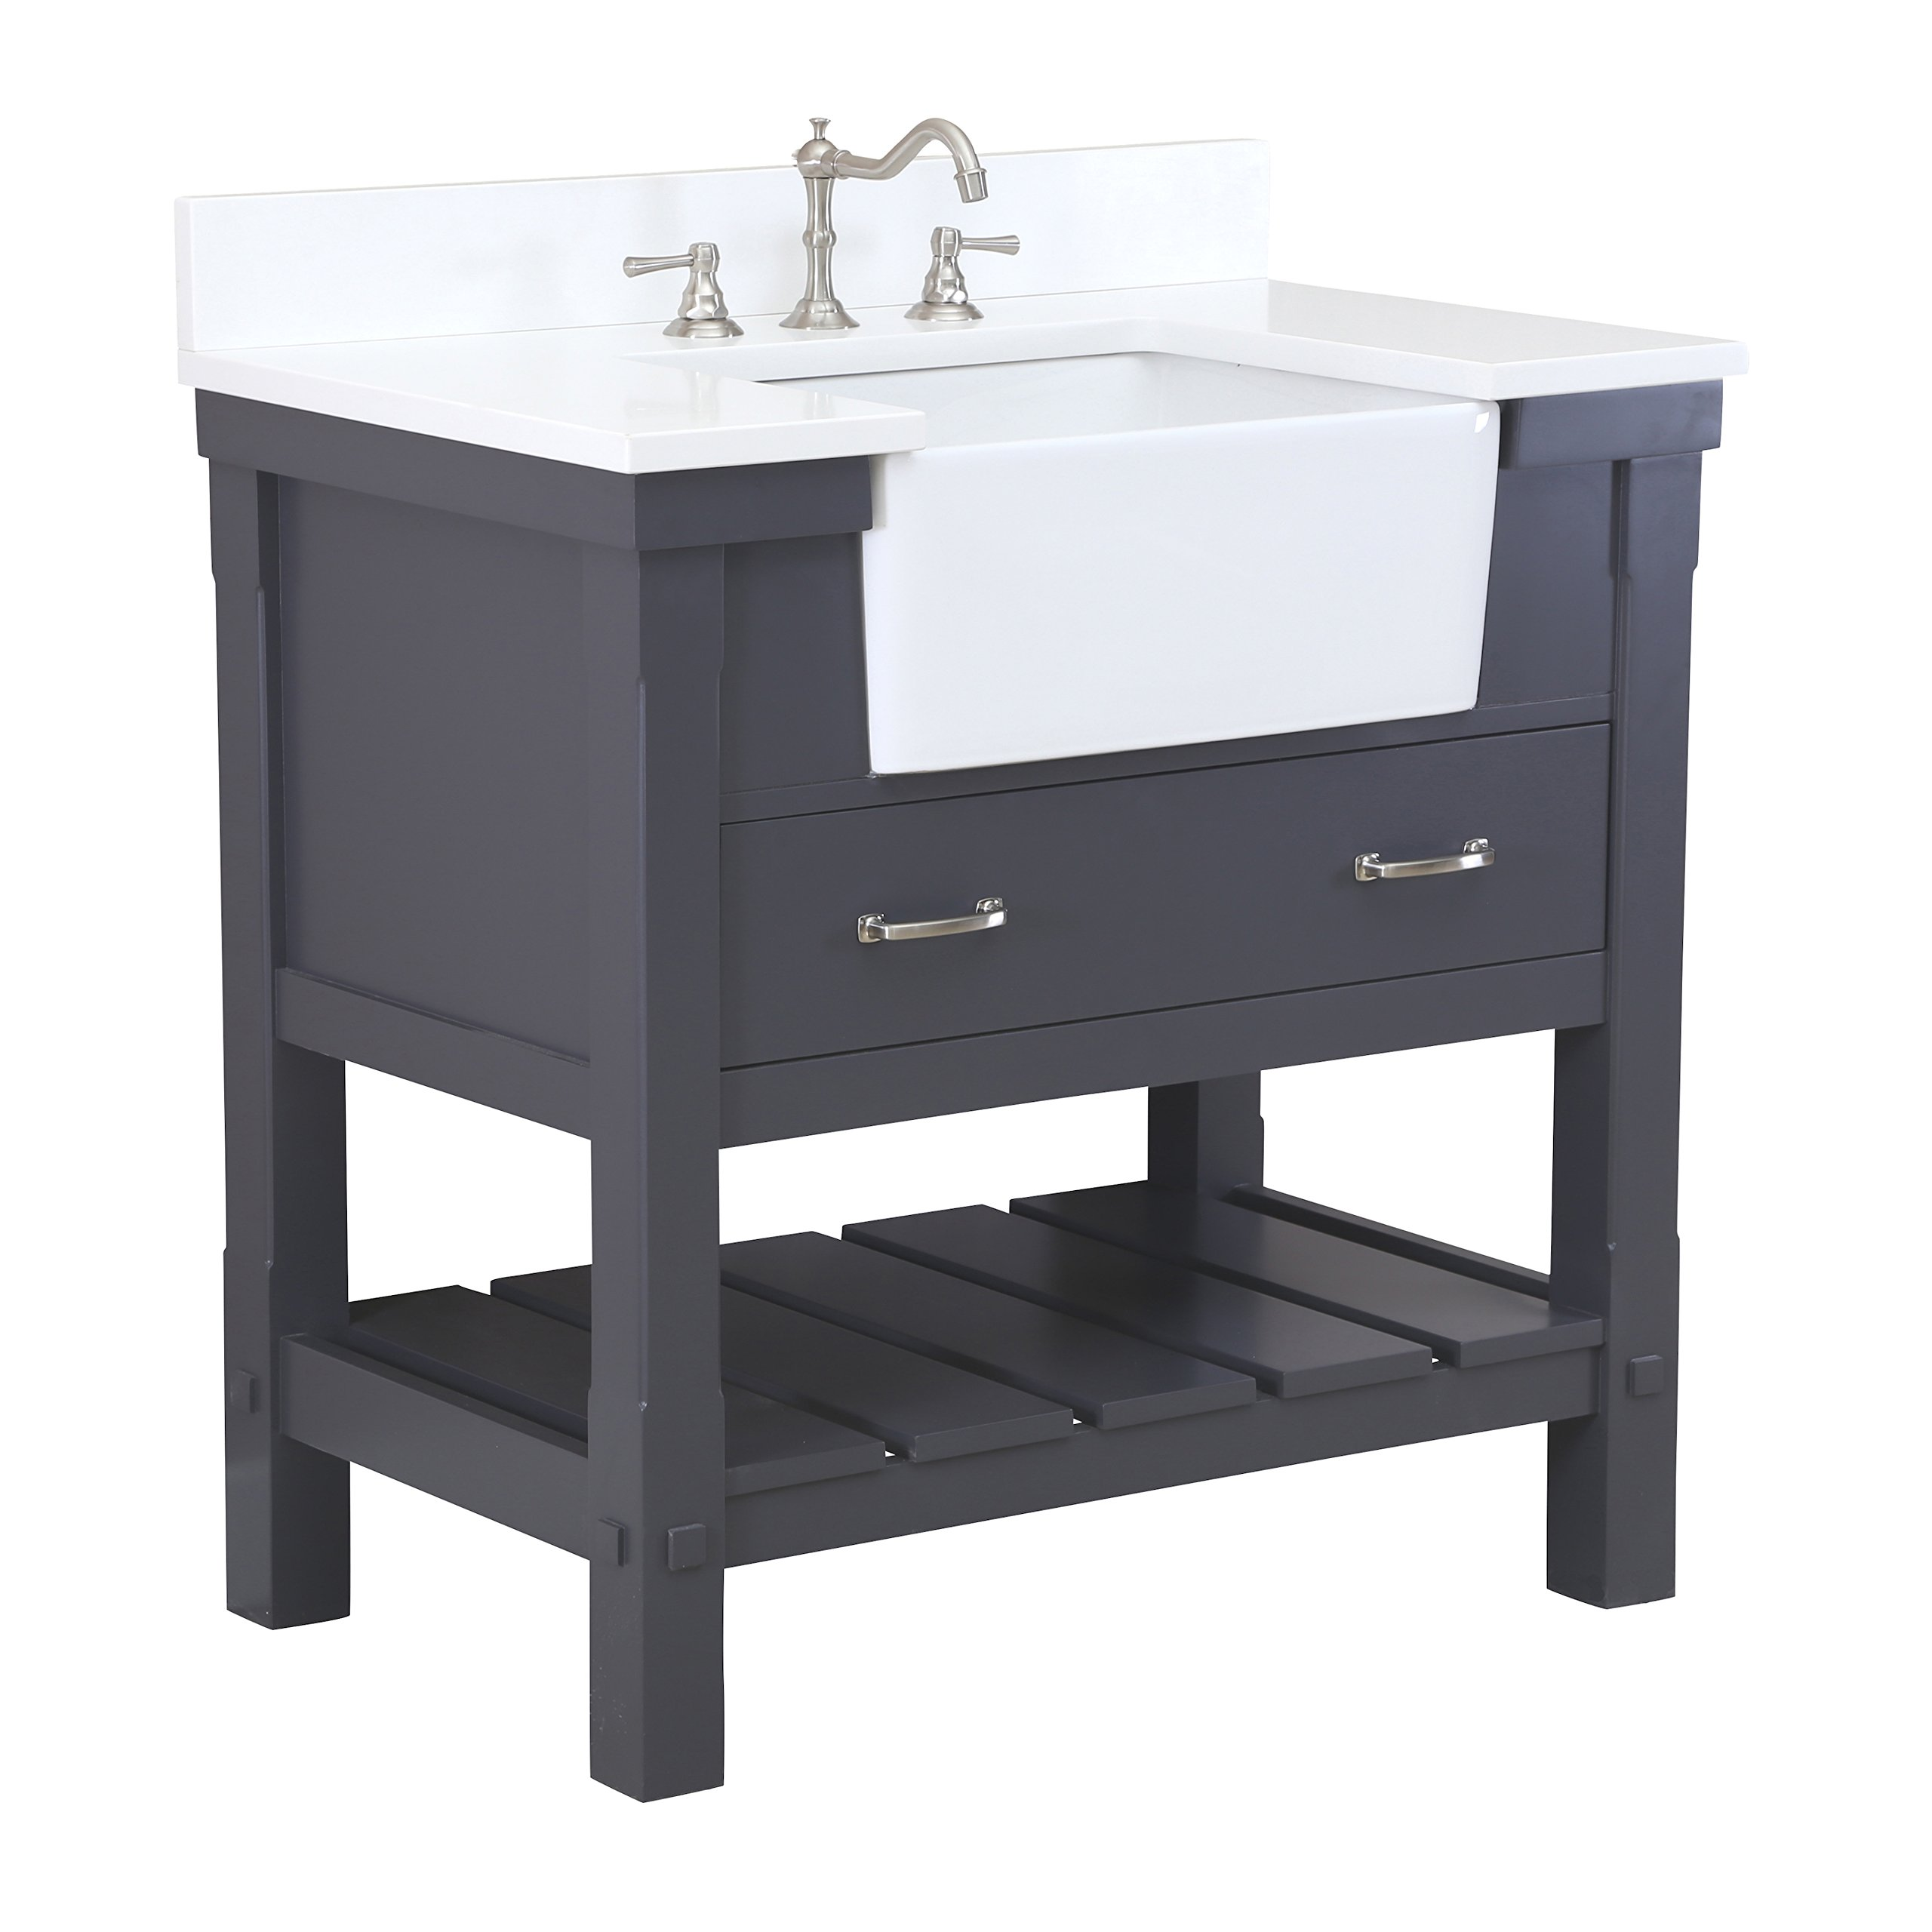 Charlotte 36-inch Bathroom Vanity (Quartz/Charcoal Gray): Includes a Quartz Countertop, Charcoal Gray Cabinet with Soft Close Drawers, and White Ceramic Farmhouse Apron Sink by Kitchen Bath Collection